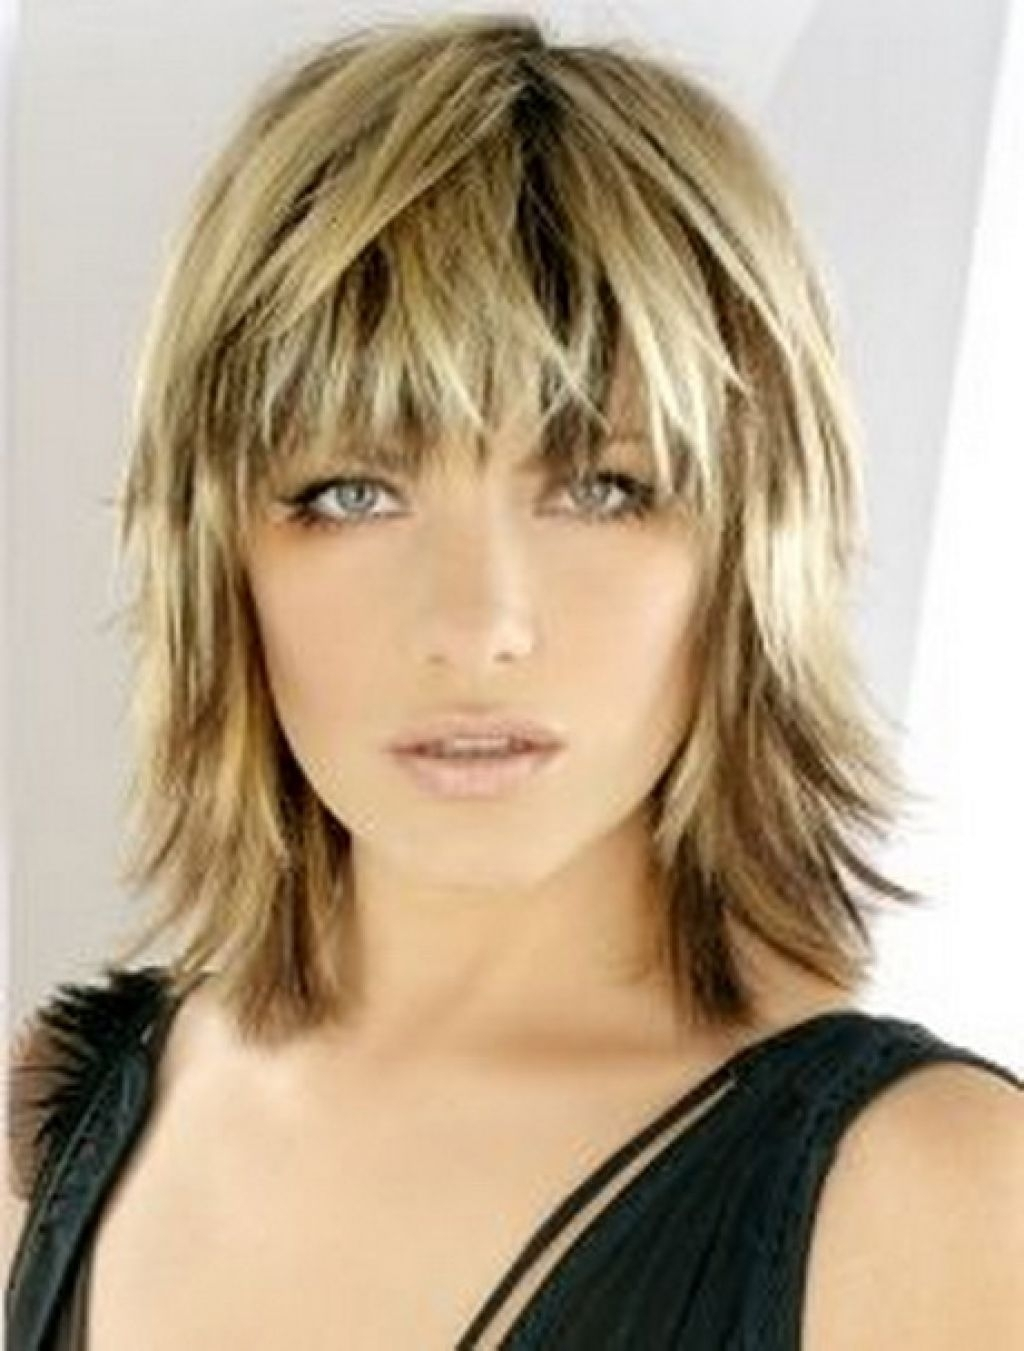 Shaggy Shoulder Length Haircut 1000+ Images About Hairstyles On Inside Most Recently Released Shaggy Wispy Hairstyles (View 12 of 15)